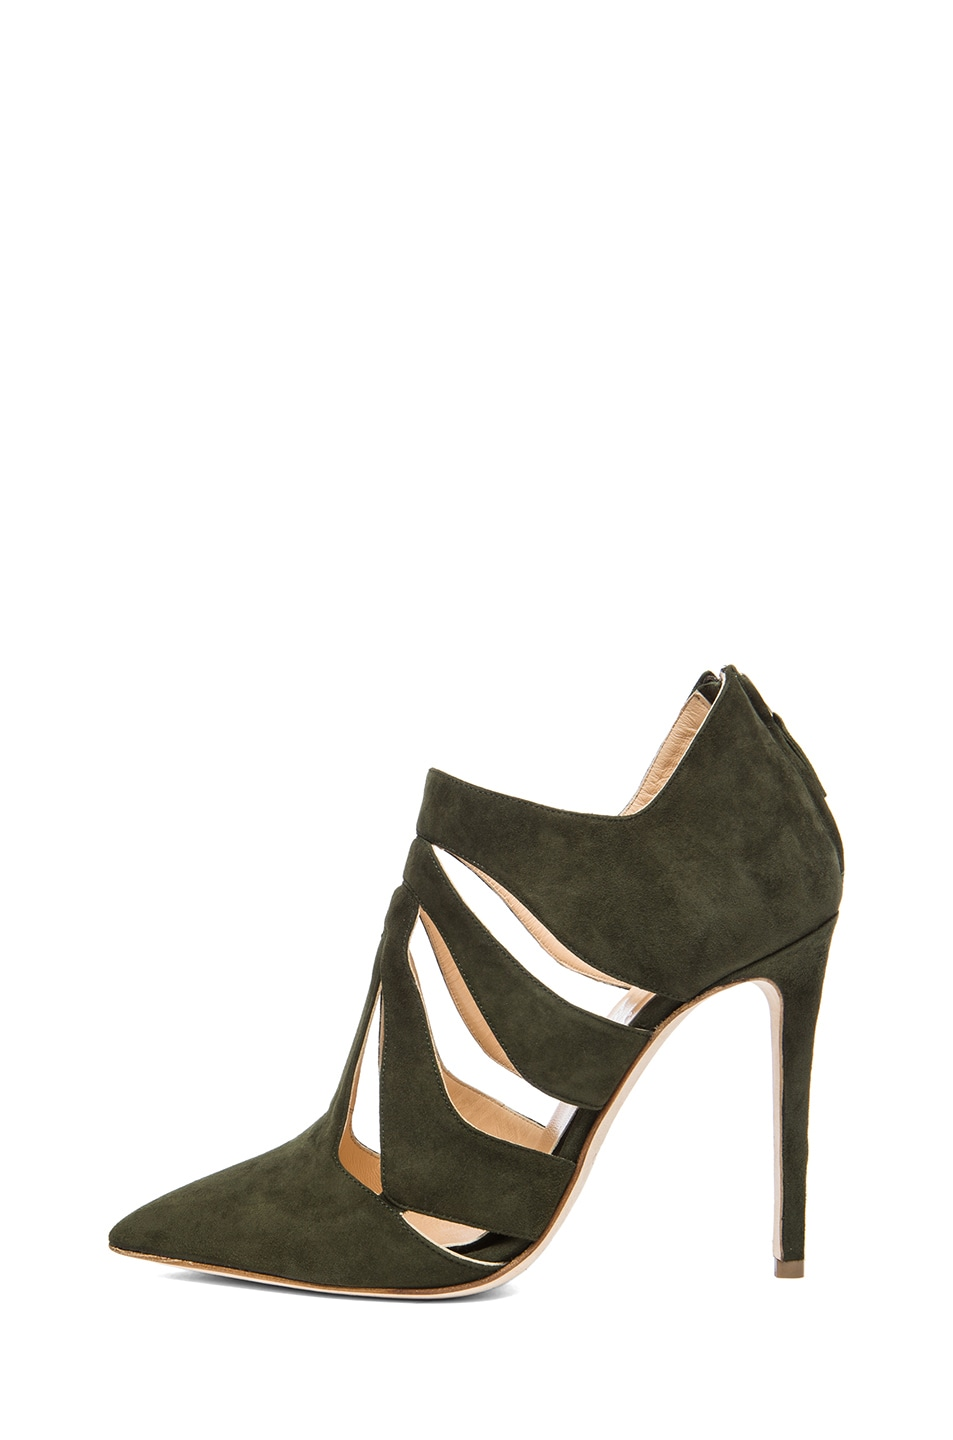 Image 1 of Alejandro Ingelmo Skeleton Suede Booties in Military